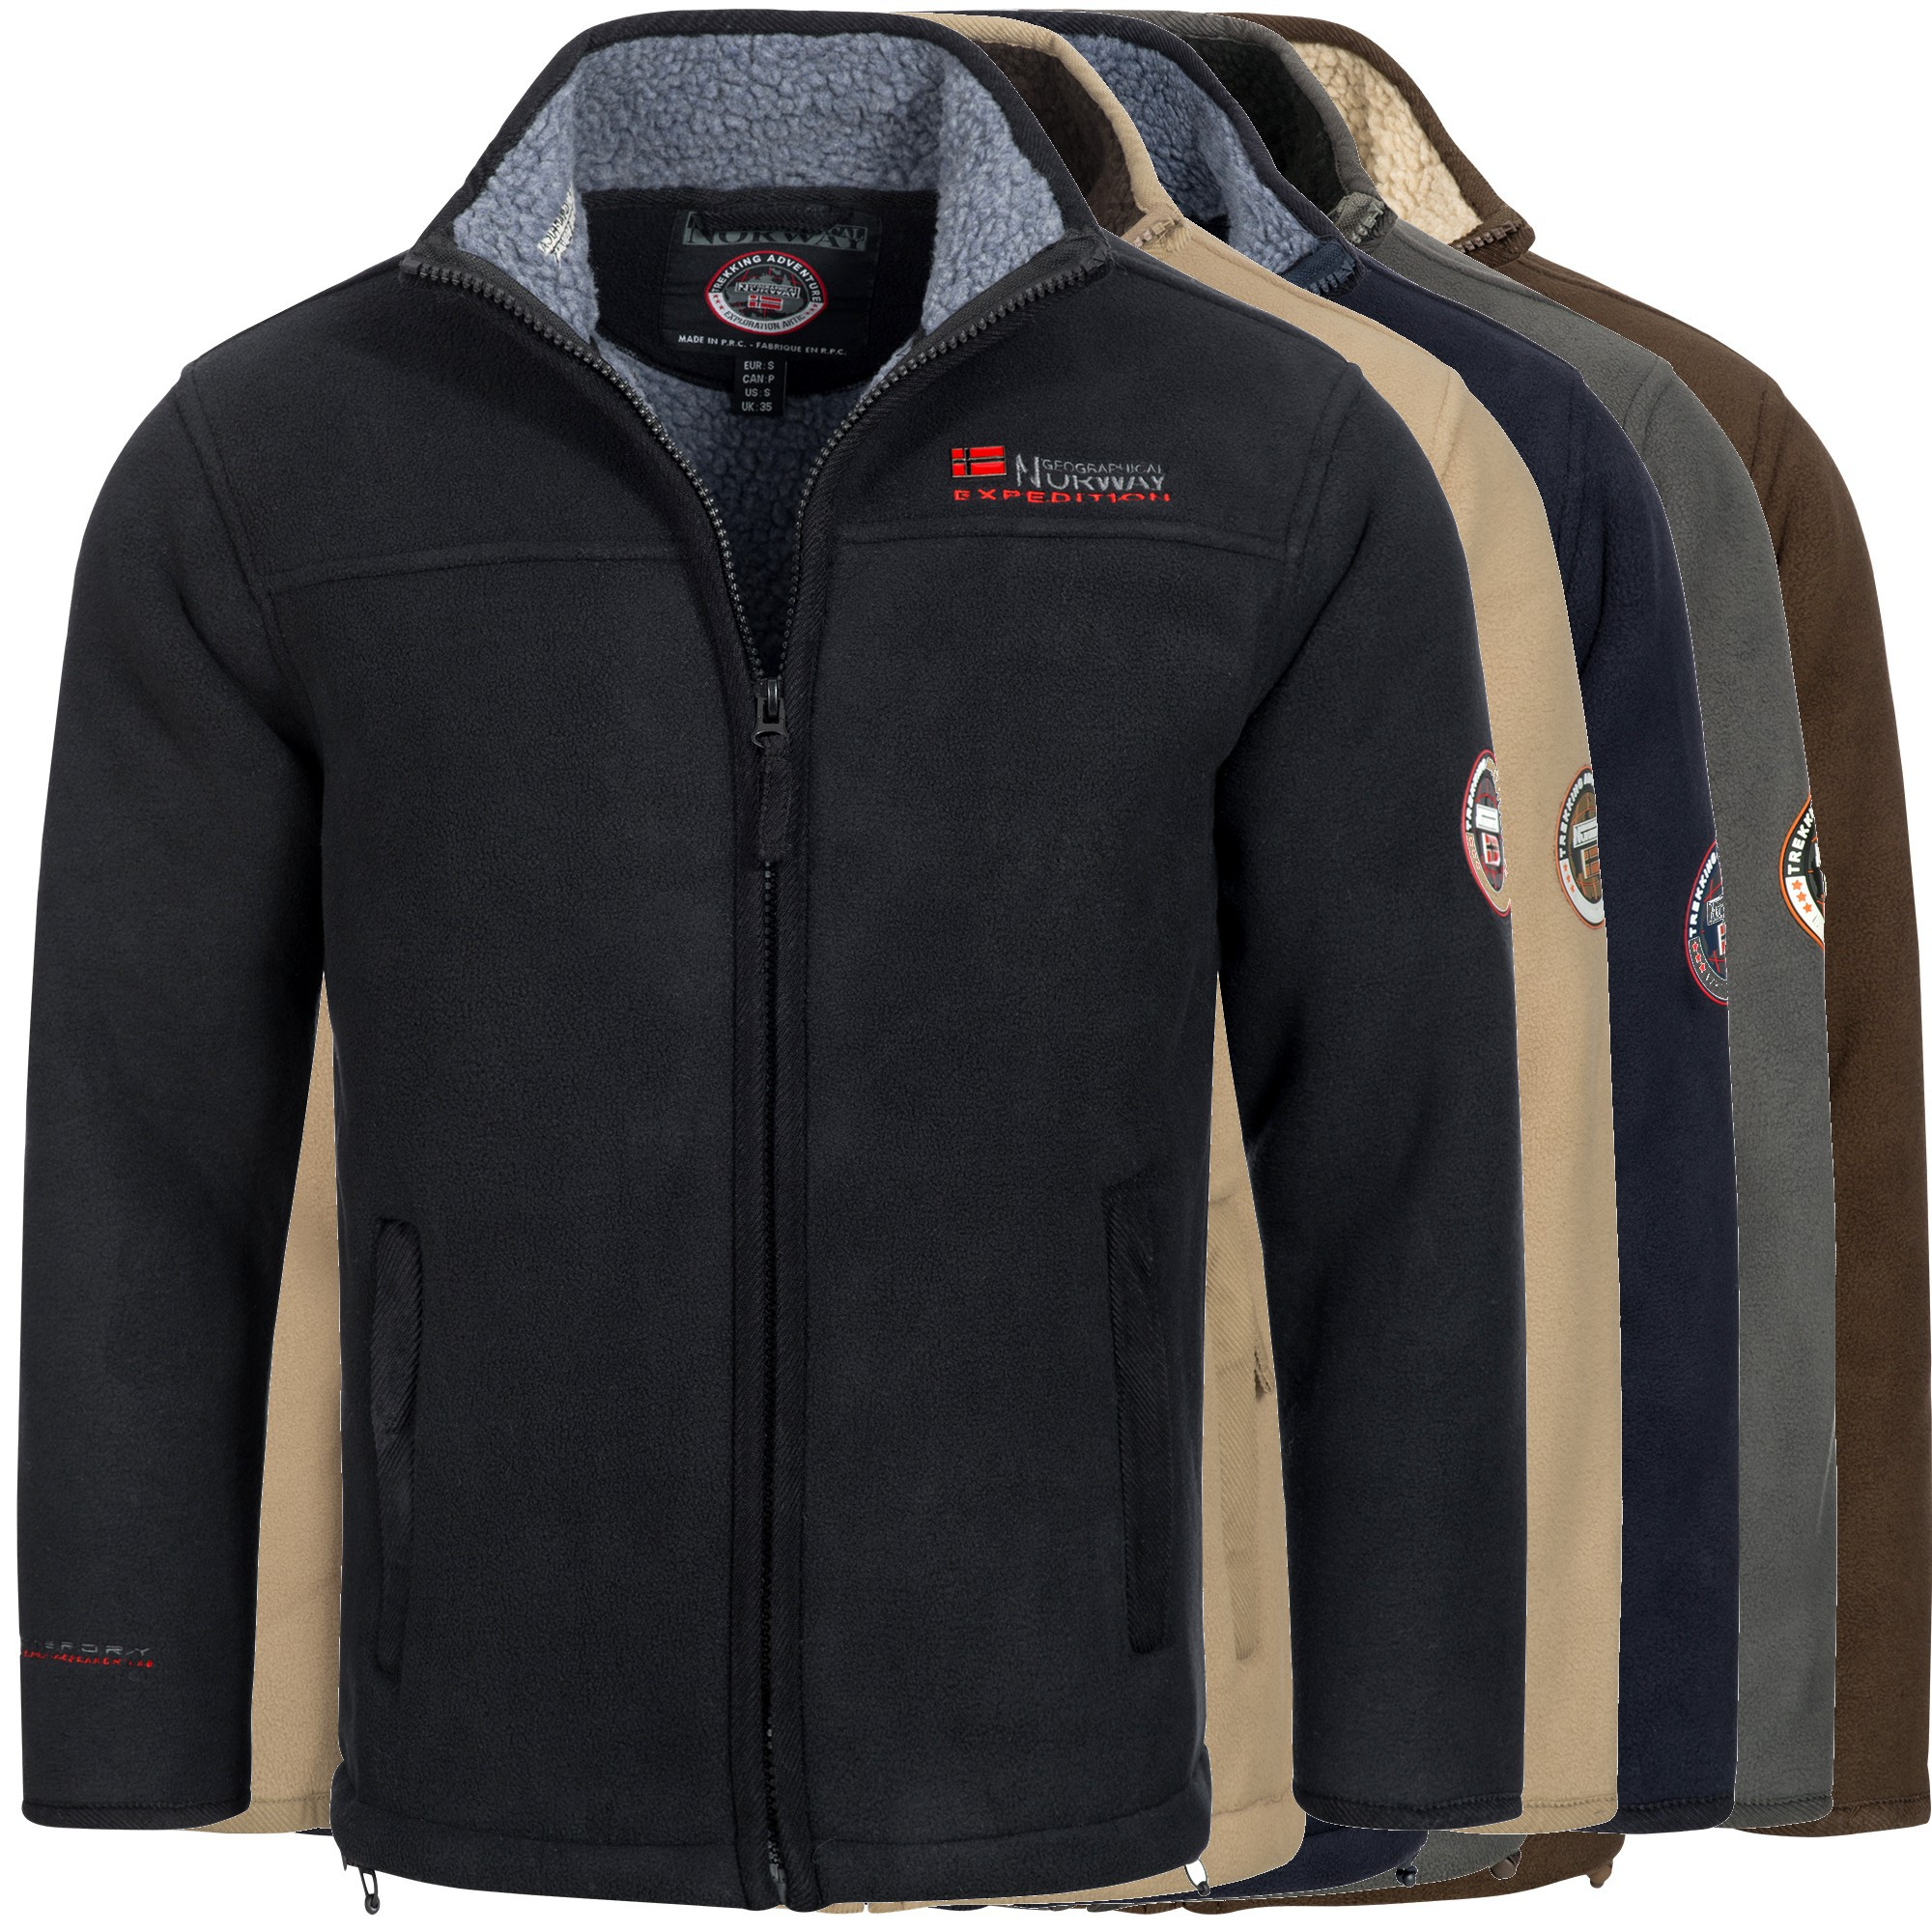 geographical norway ulmaire herren fleece jacke. Black Bedroom Furniture Sets. Home Design Ideas